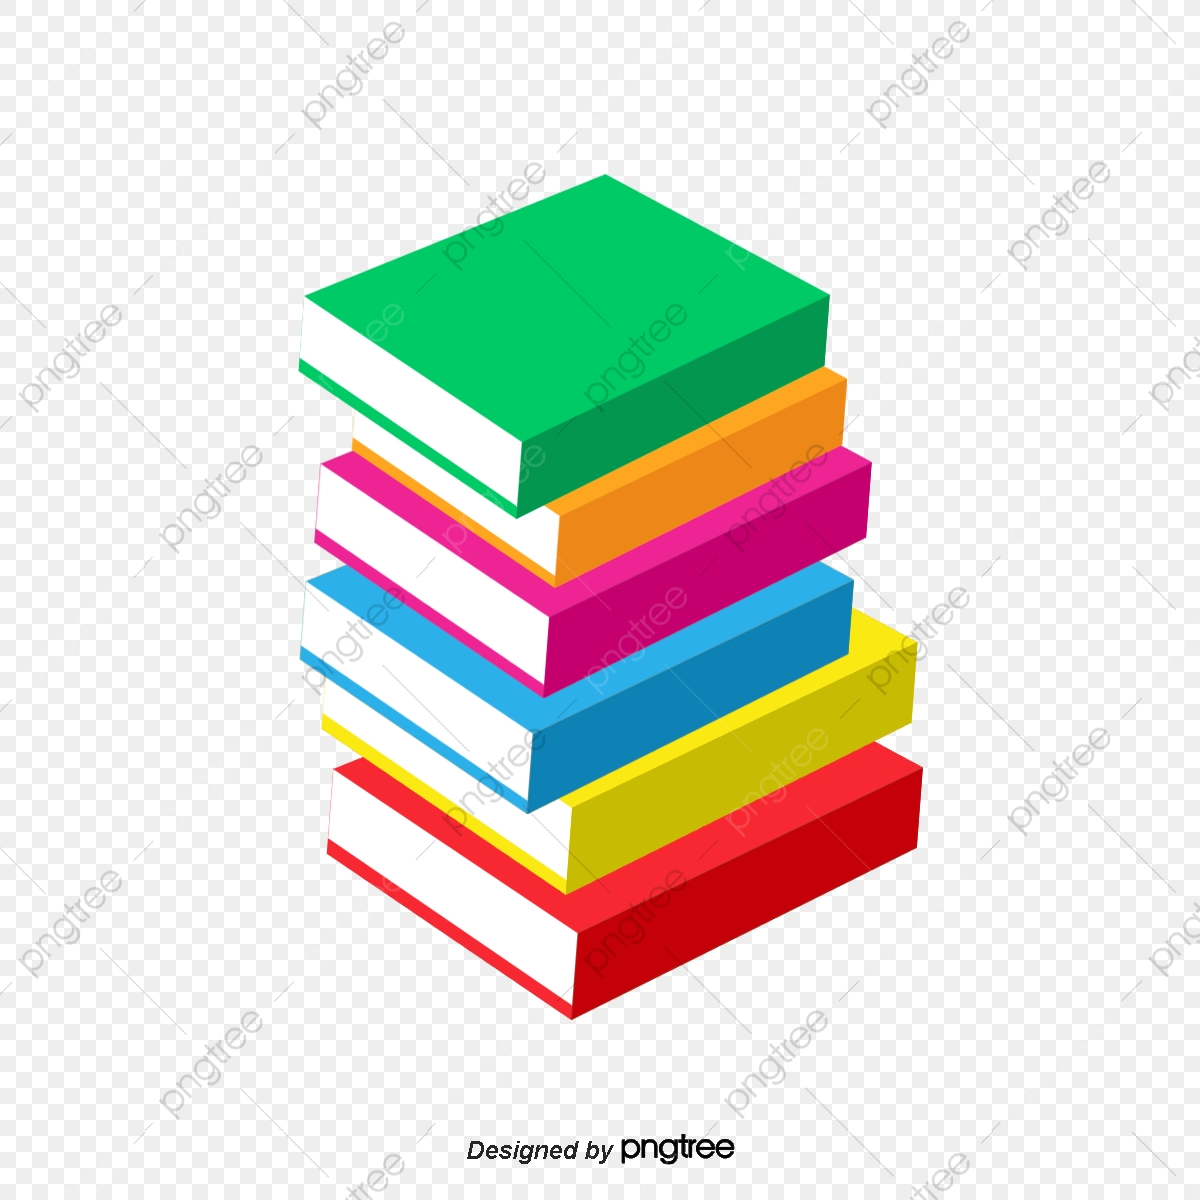 Descargar Libros Texto Color Book Color Libro De Texto Libros Png Y Vector Para Descargar